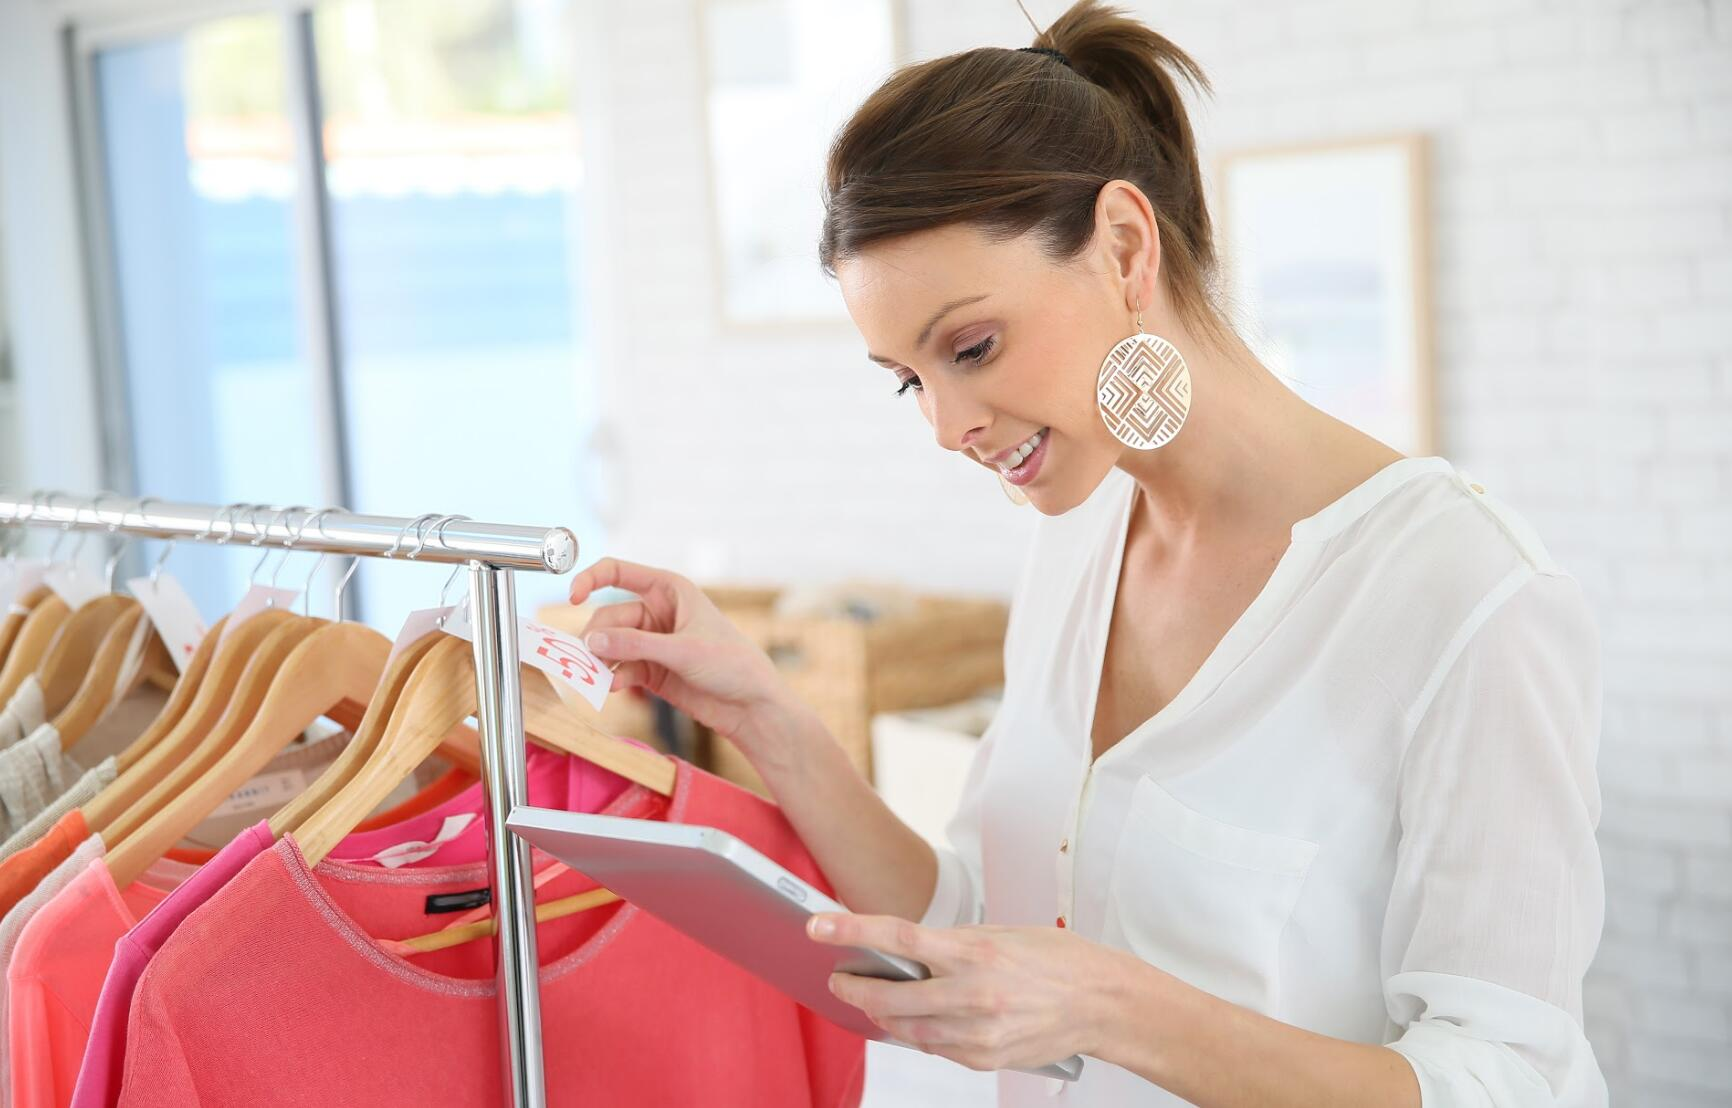 Clothing Boutique 5 Things You Should Know When Starting A Clothing Boutique